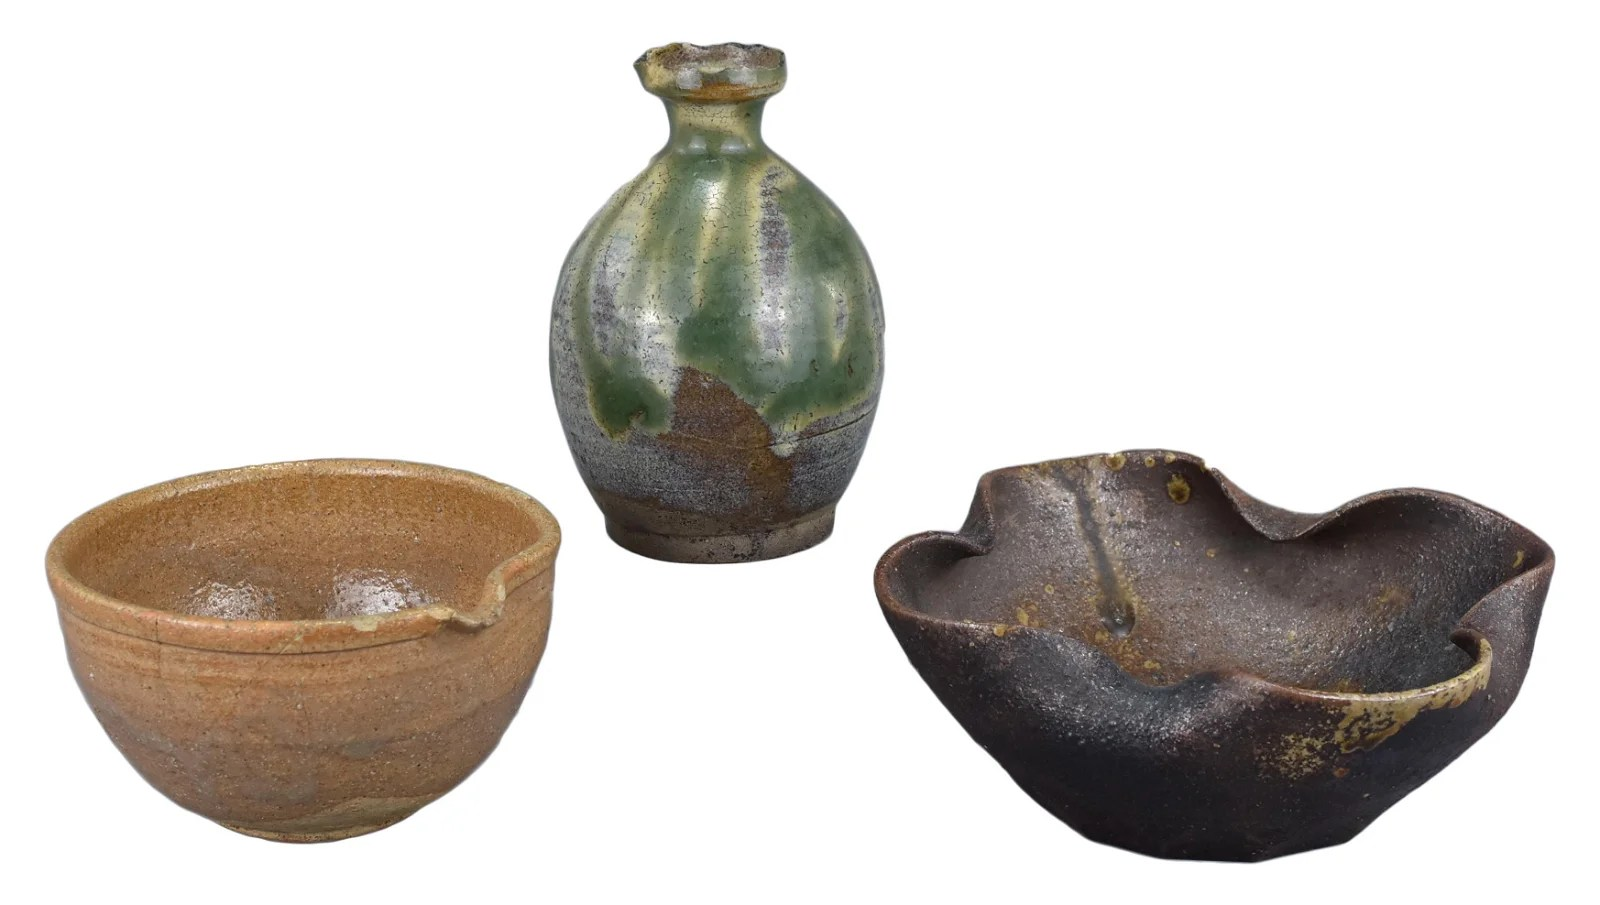 A Japanese Stoneware Bottle & Two Bowls, 18th / 19th